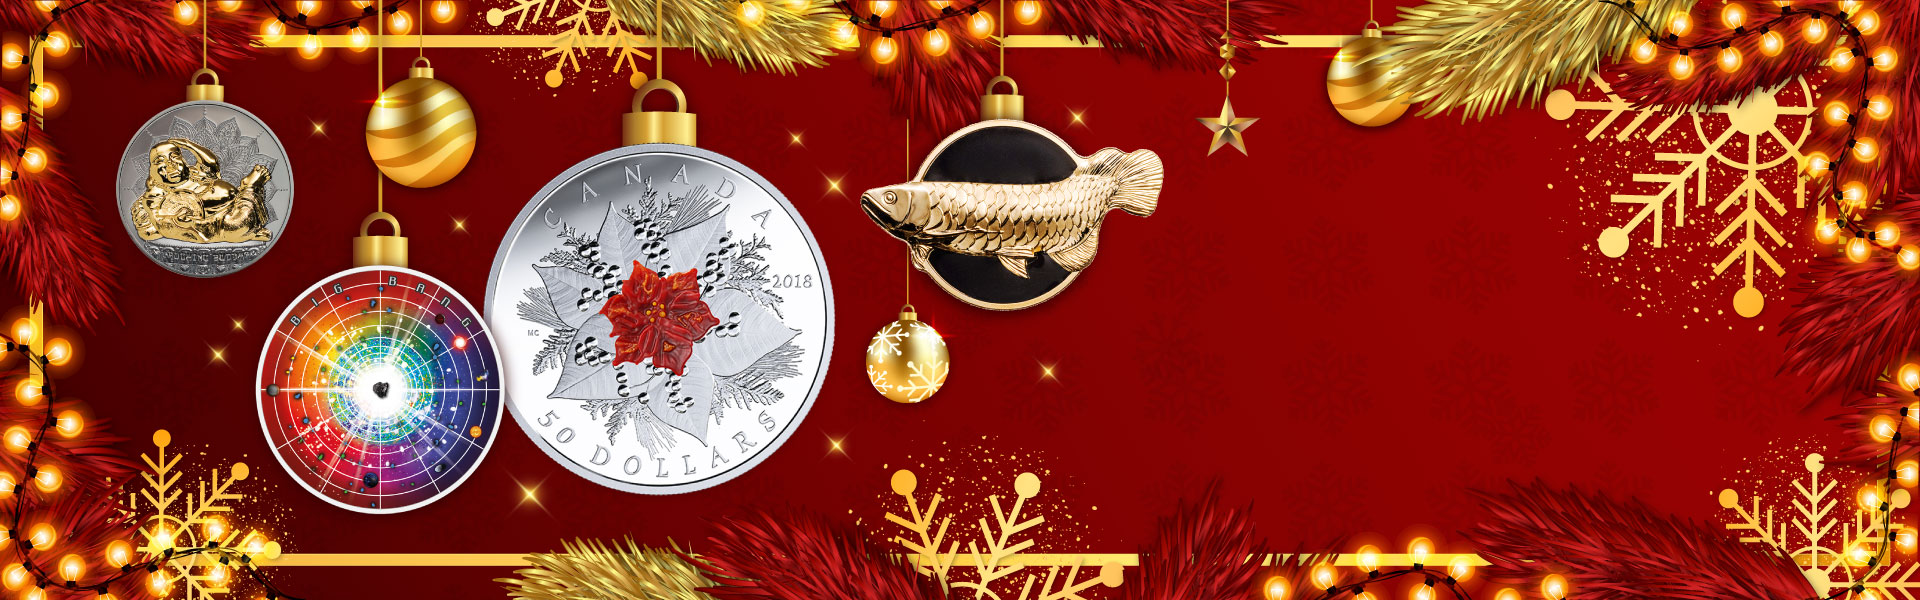 Up to 30% off on selected gift coins